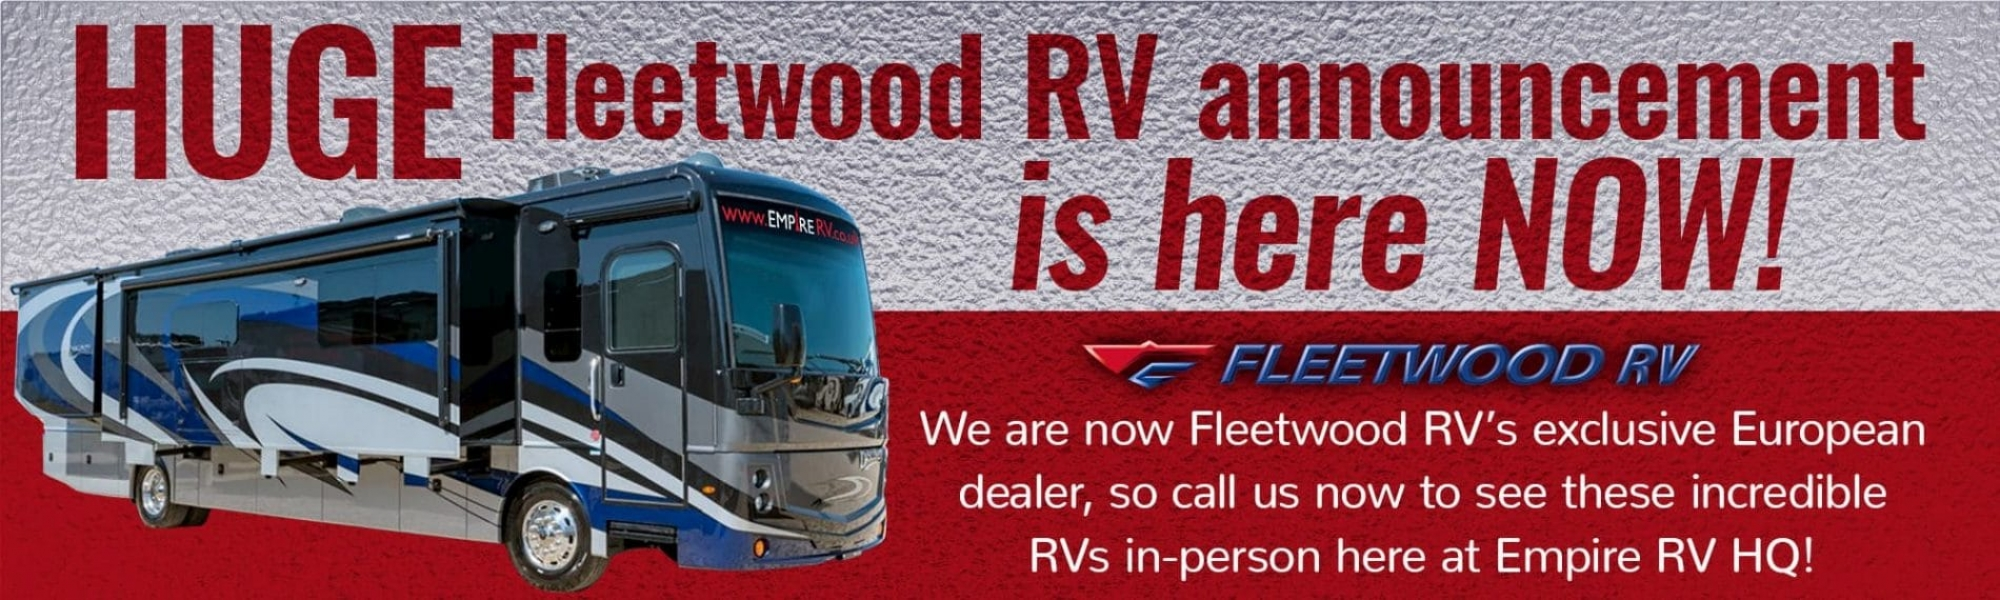 Fleetwood RV for sale UK and American Motorhomes for sale and rent - (c) Empire RV